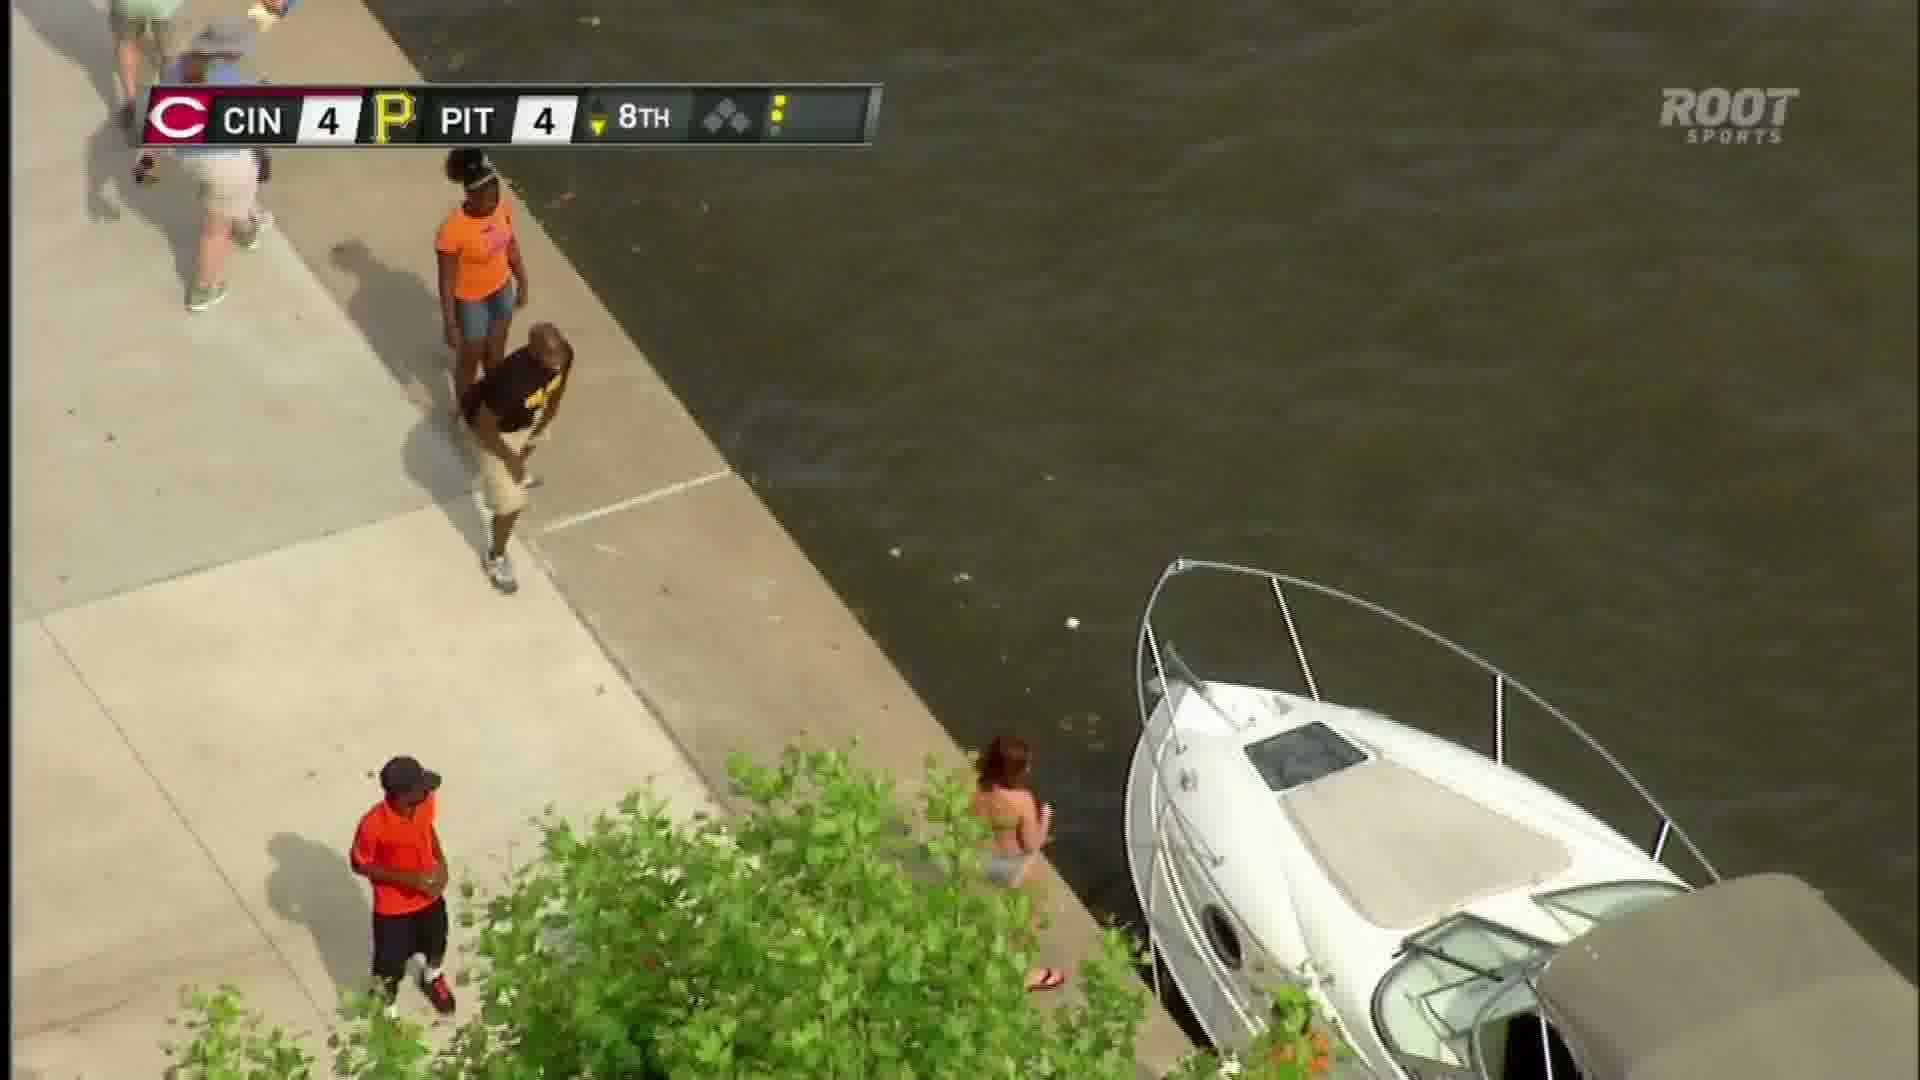 Fans watch the baseball splash into the Allegheny River after a home run by Garrett Jones.